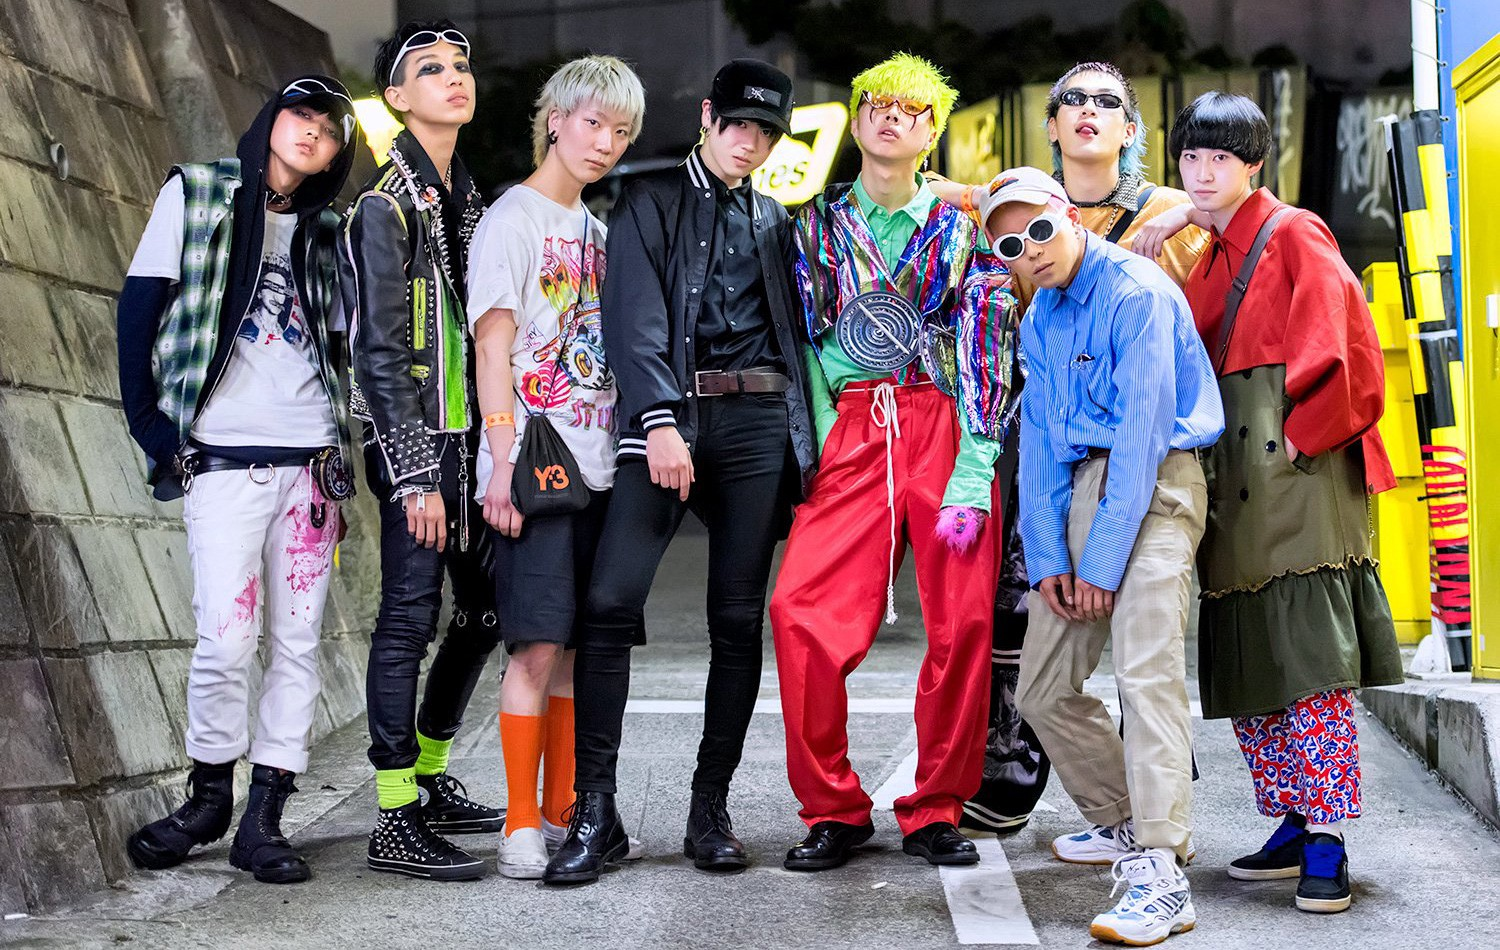 Japanese Street Fashion 2017     15 Things You Need To Know What Harajuku Boys Look Like in 2017